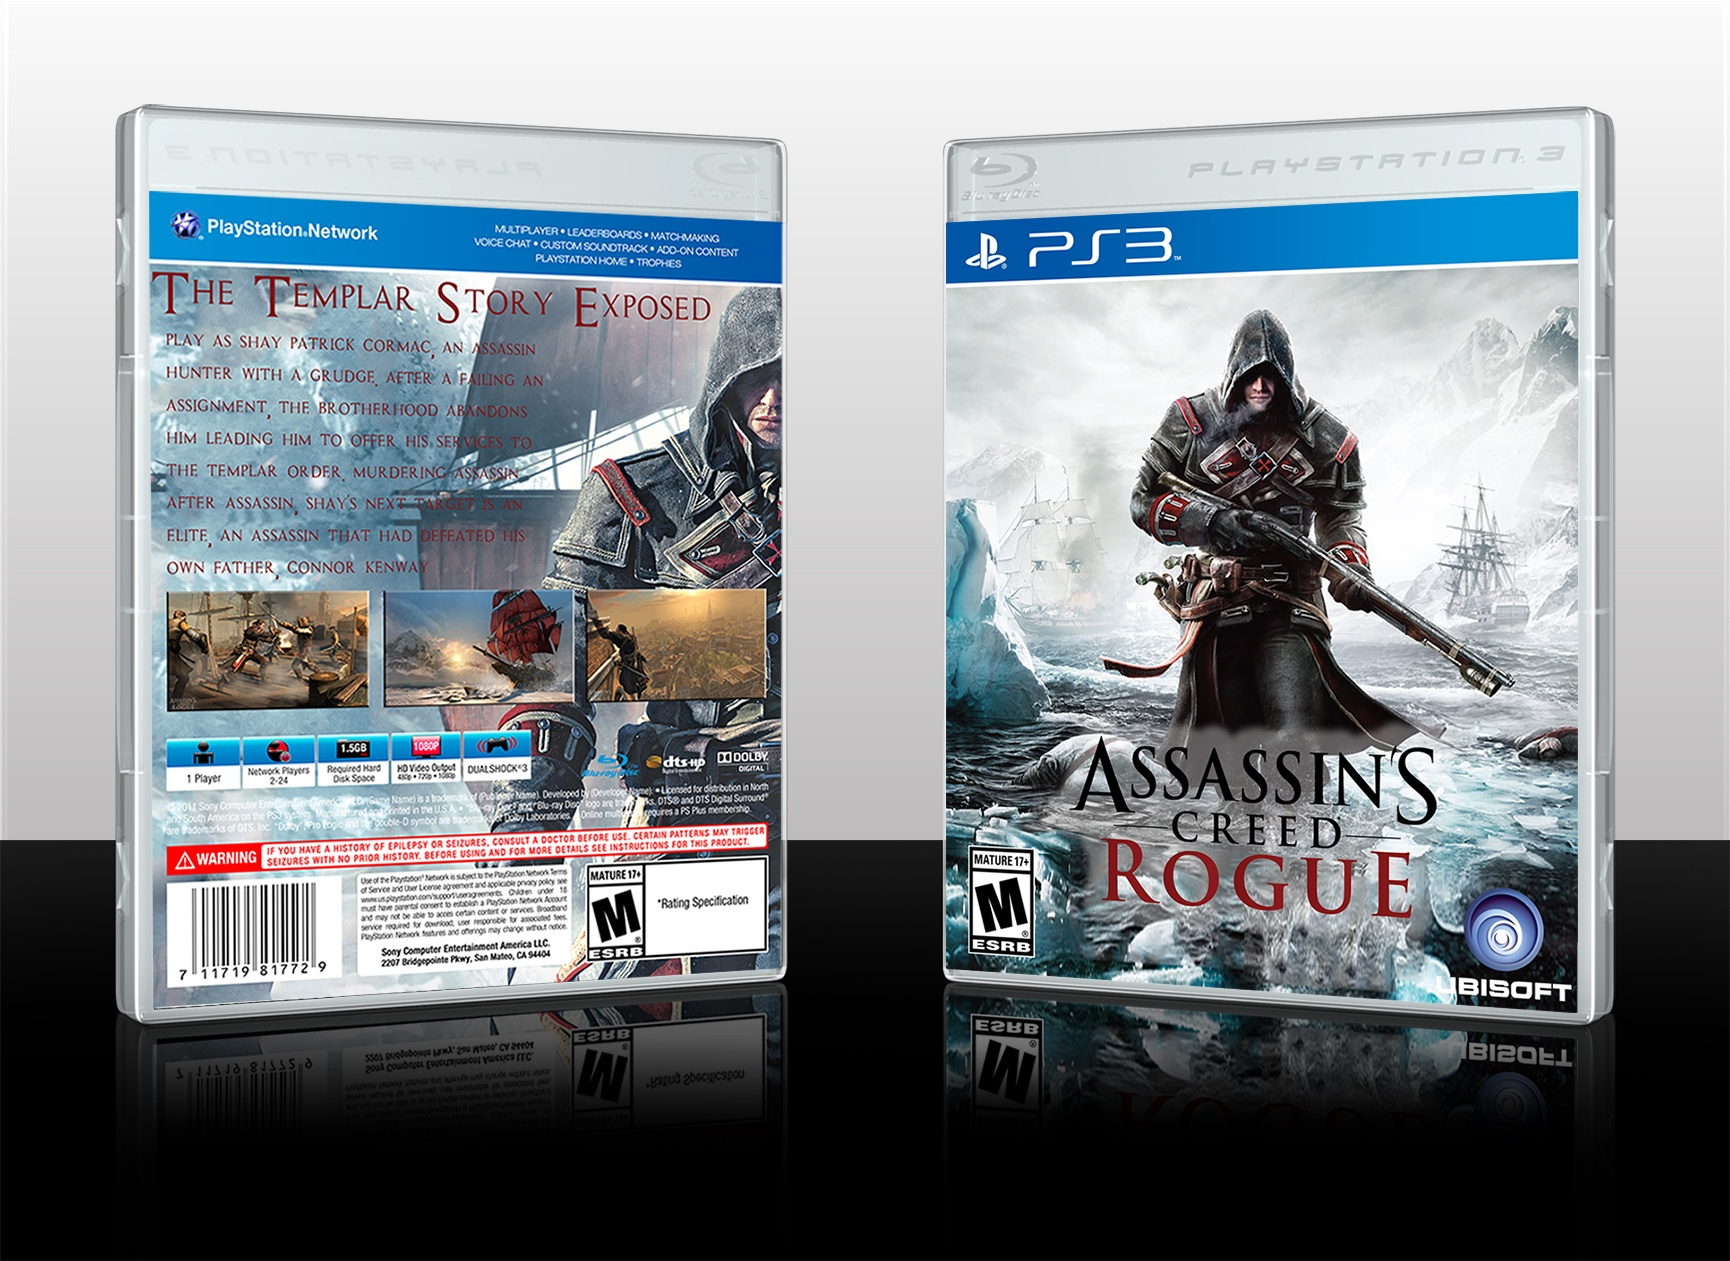 Assassin's Creed: Rogue box cover